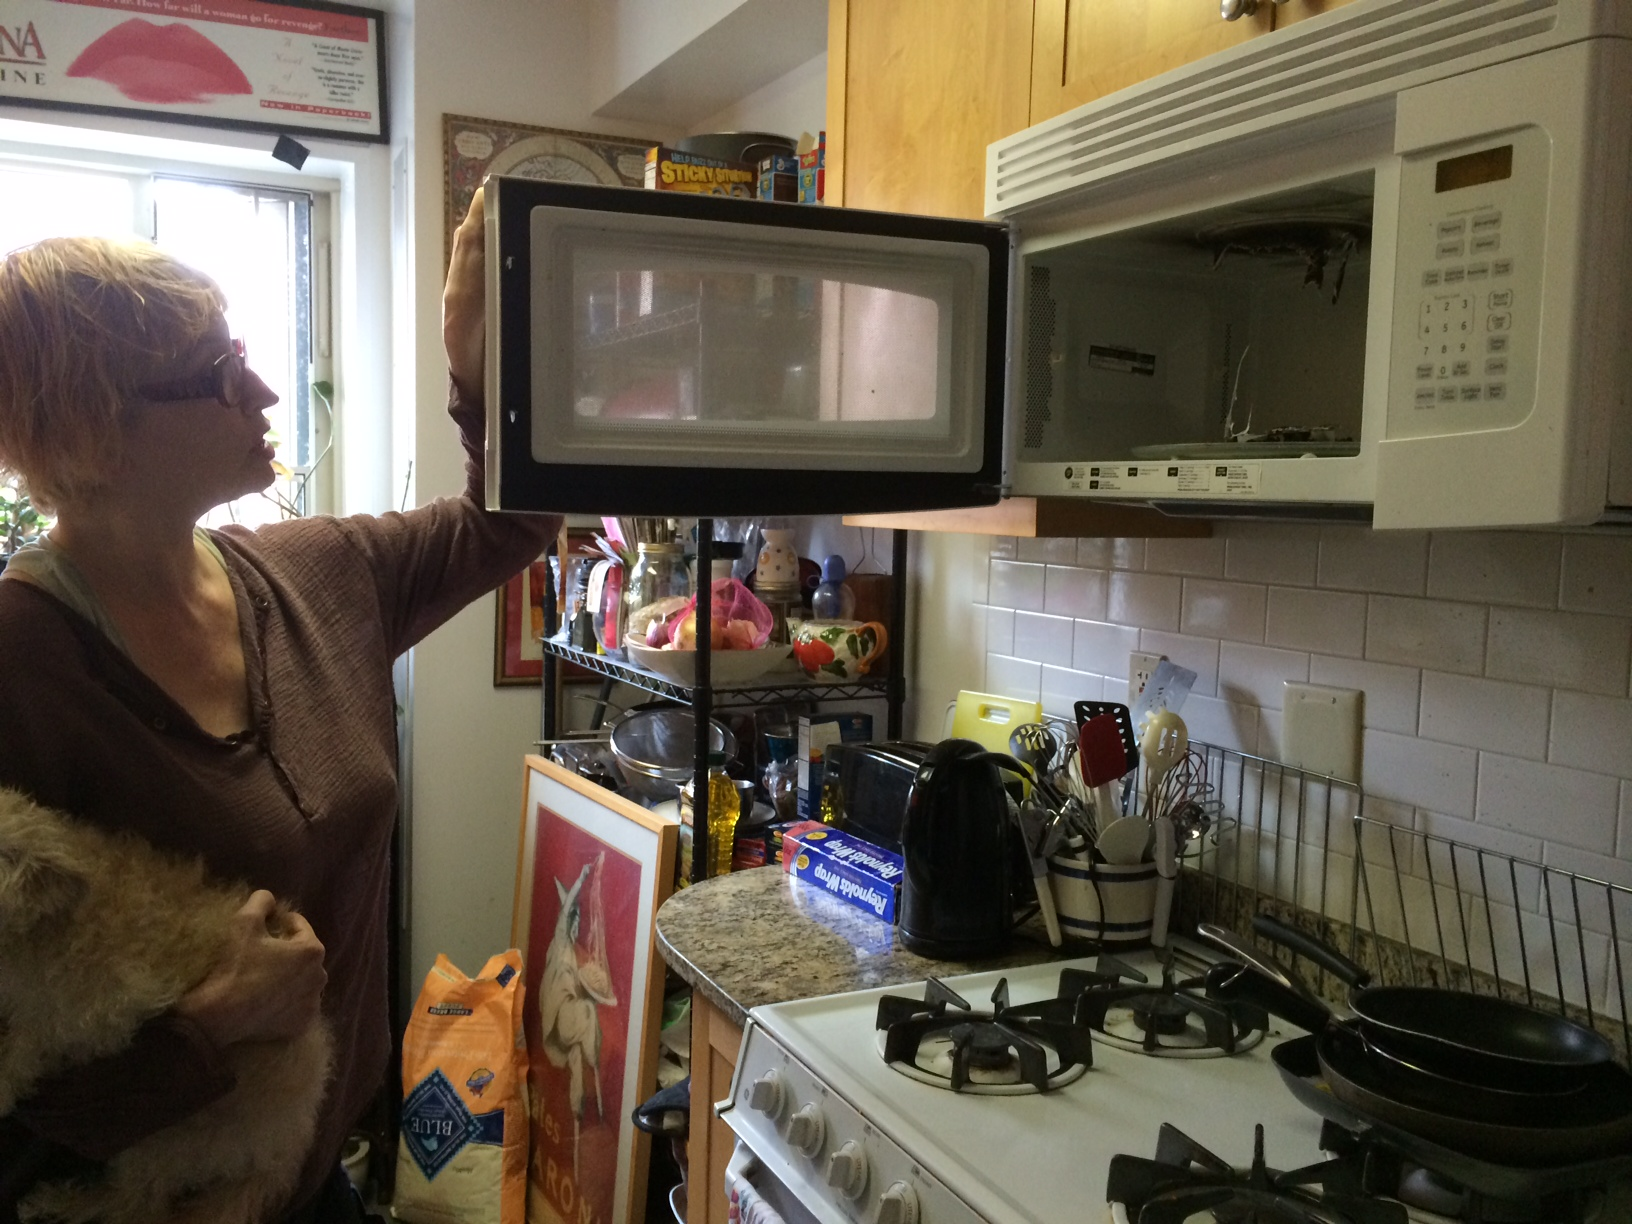 Fire Starts In Microwave Peter Cooper Village Town Destroyed Fuse Box Karen Moline Opens The Photo By Sabina Mollot